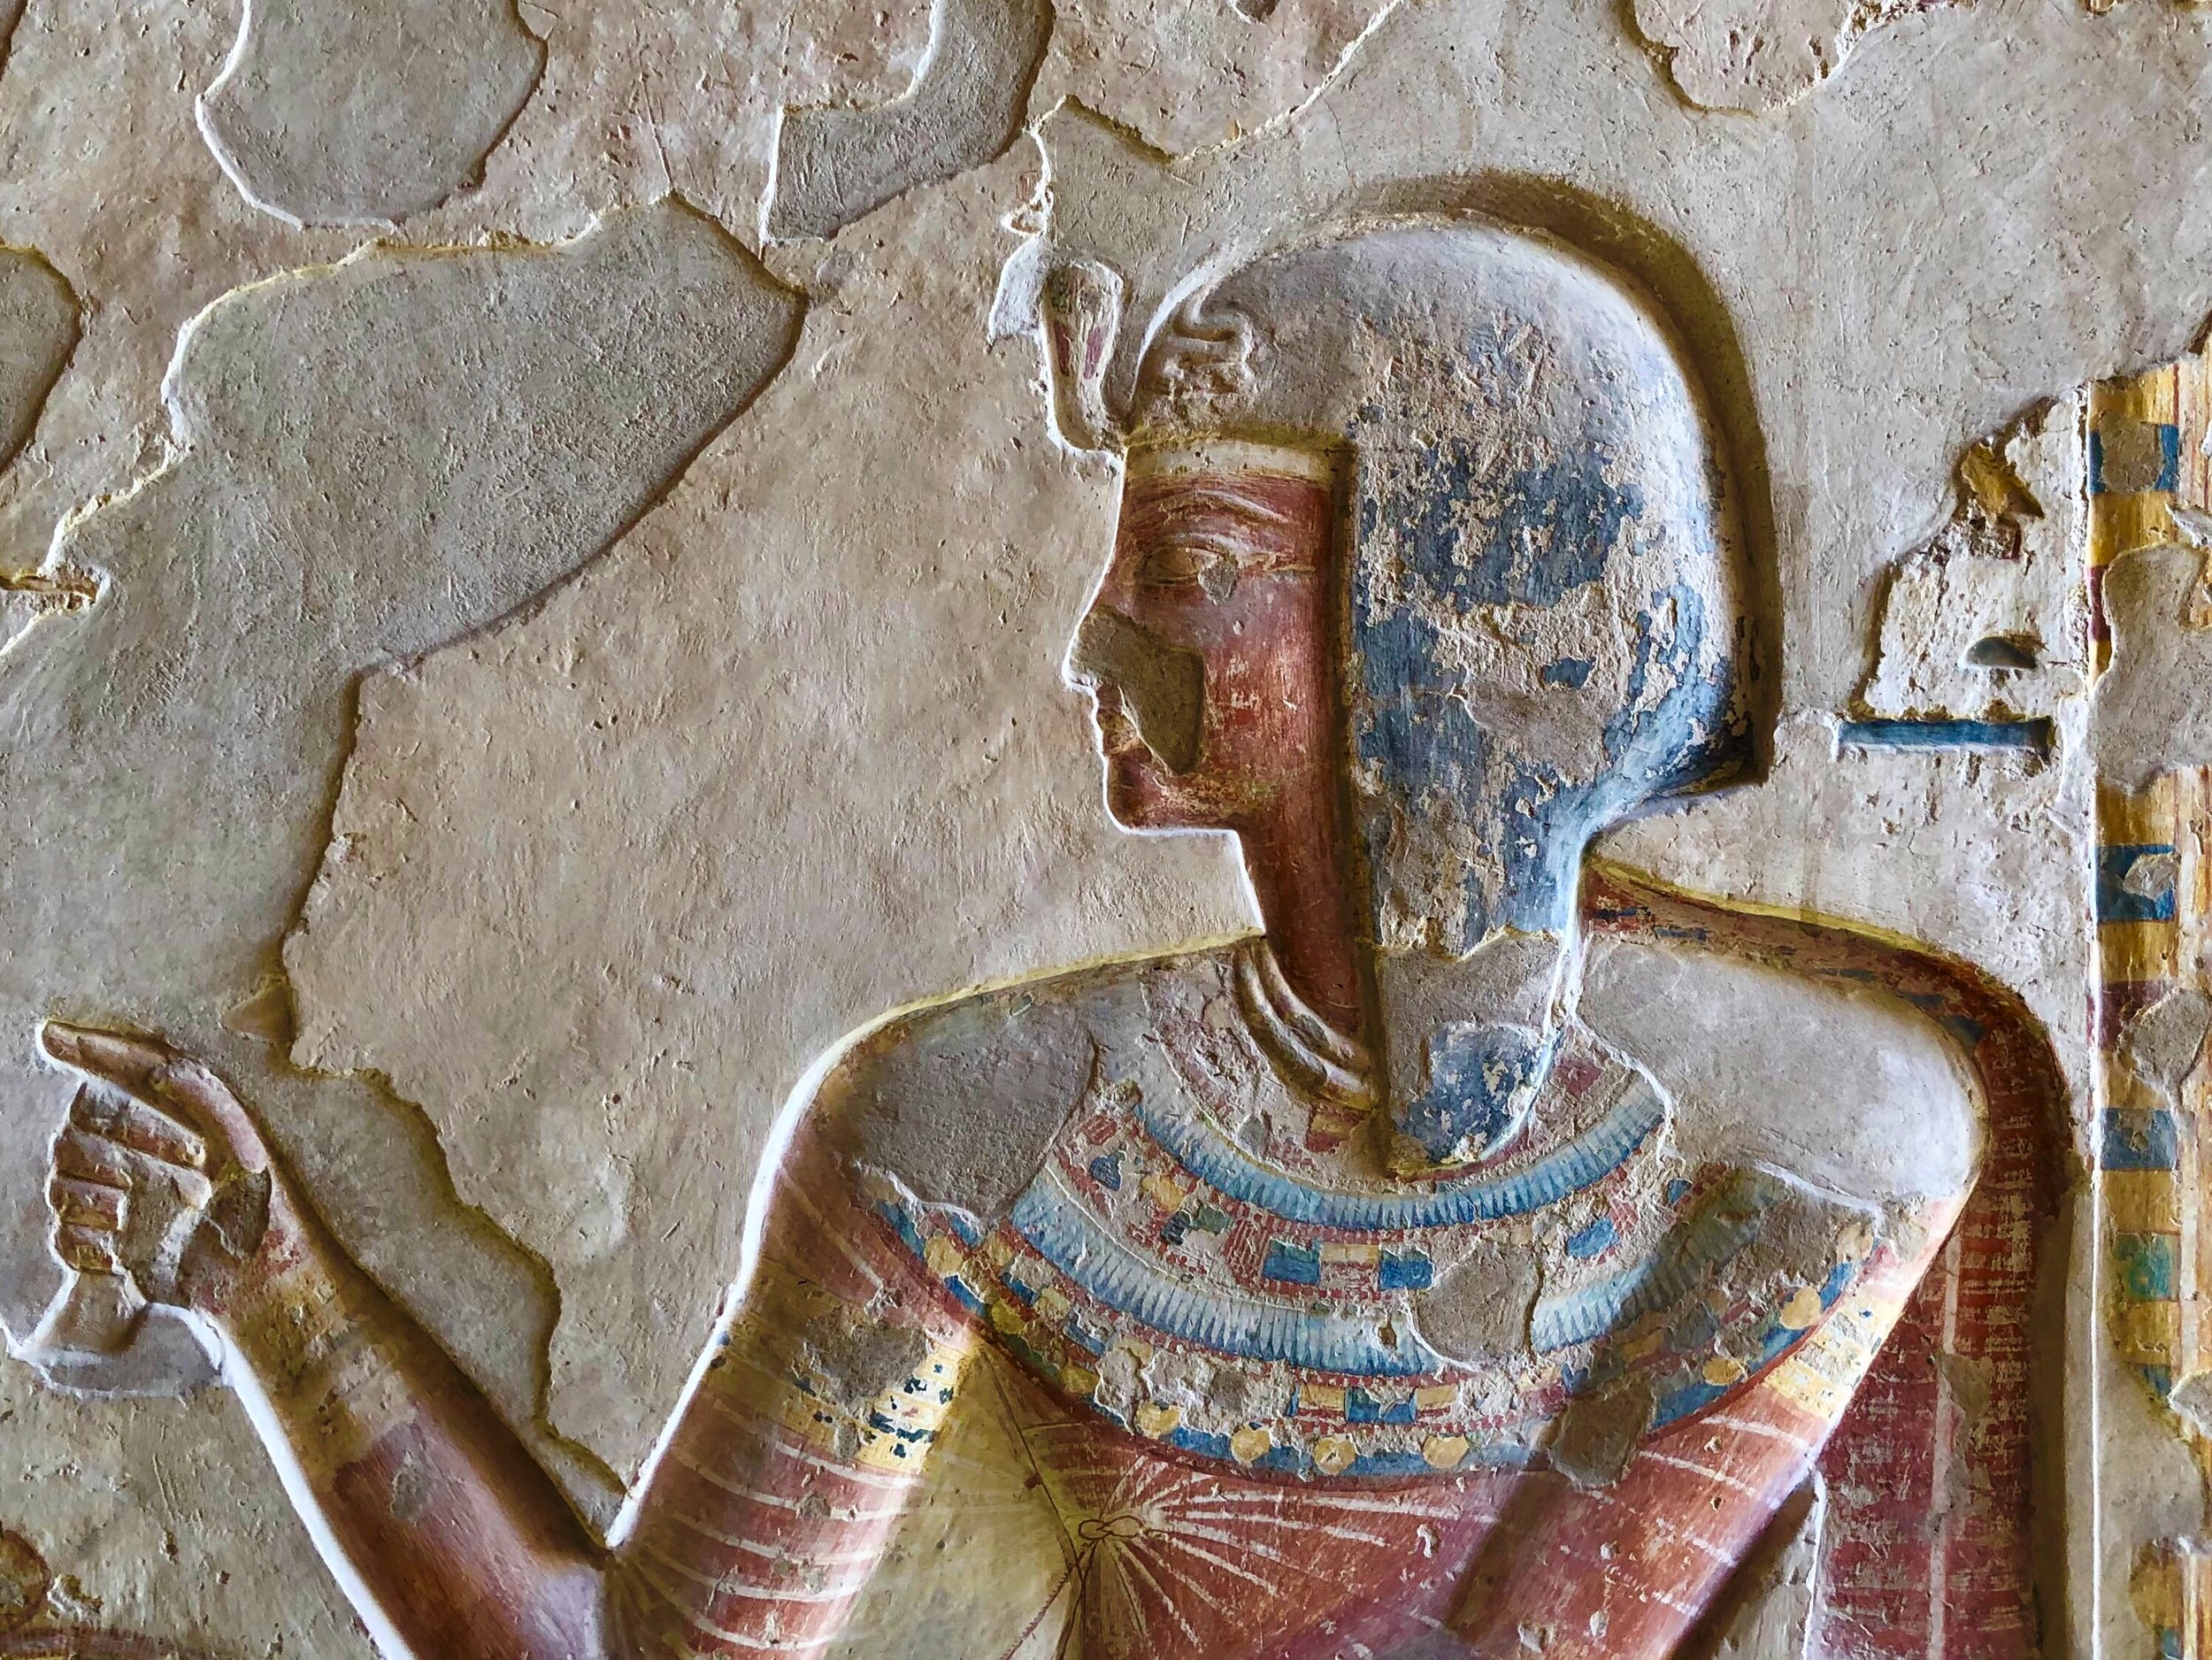 The bas-reliefs in the tombs are amazing, and many retain their original paint